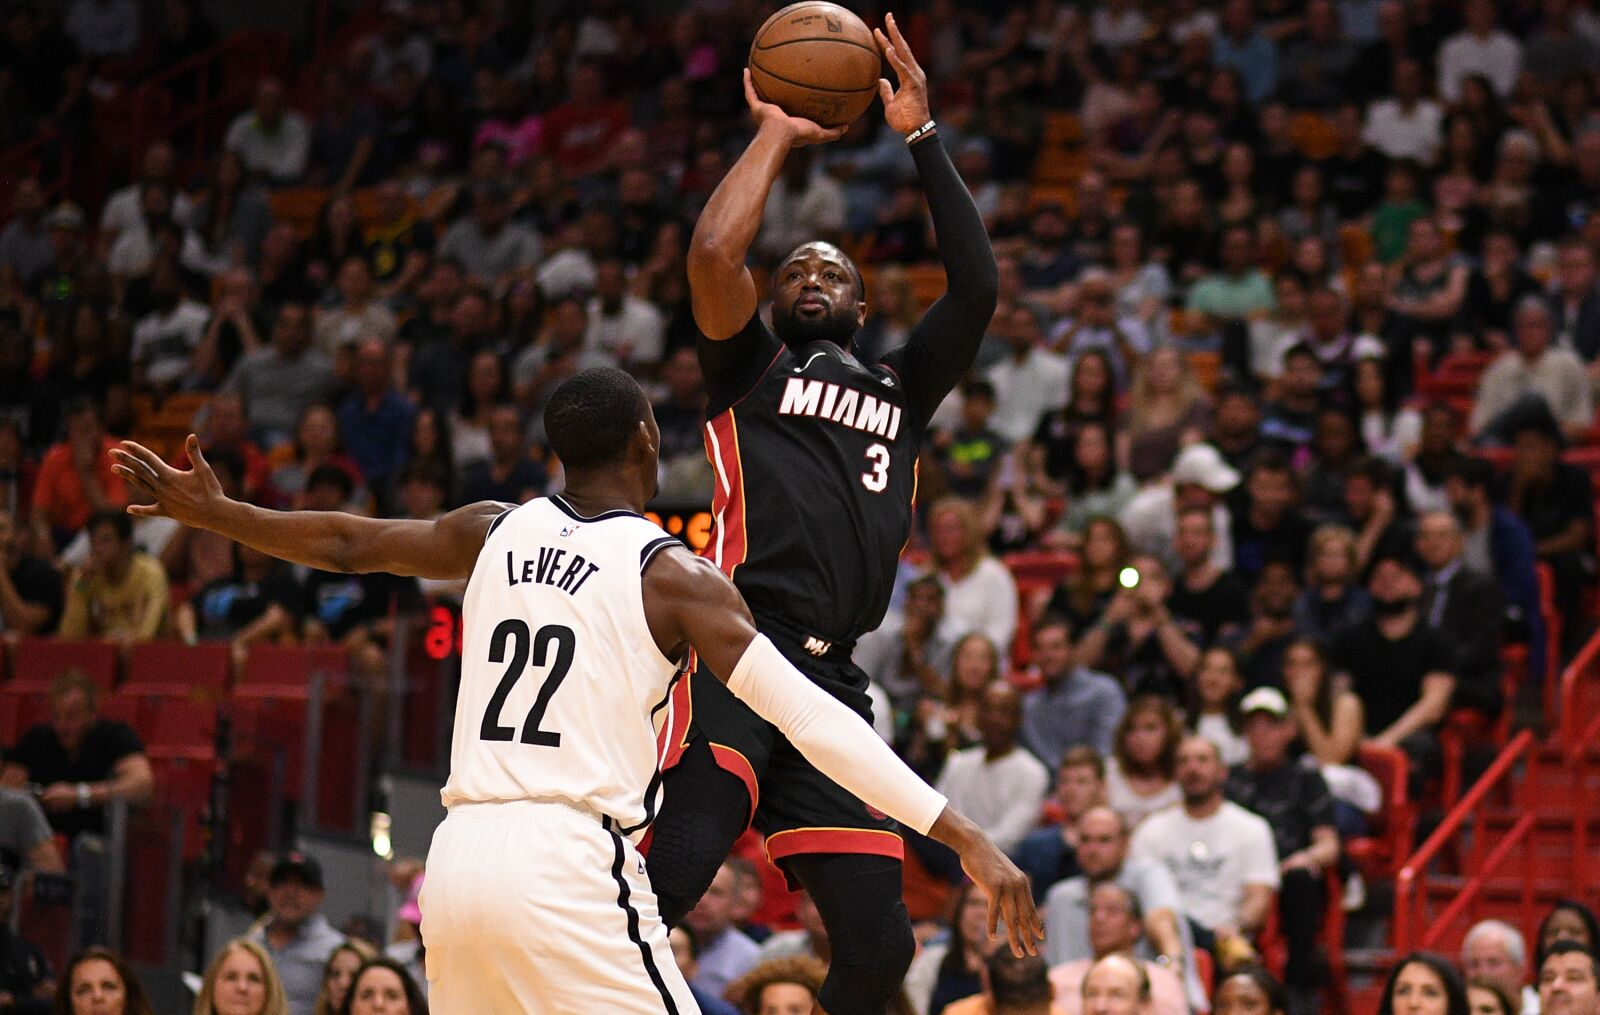 new styles 3baa2 45ed6 Miami Heat: In Dwyane Wade's final game, the Heat face the Nets